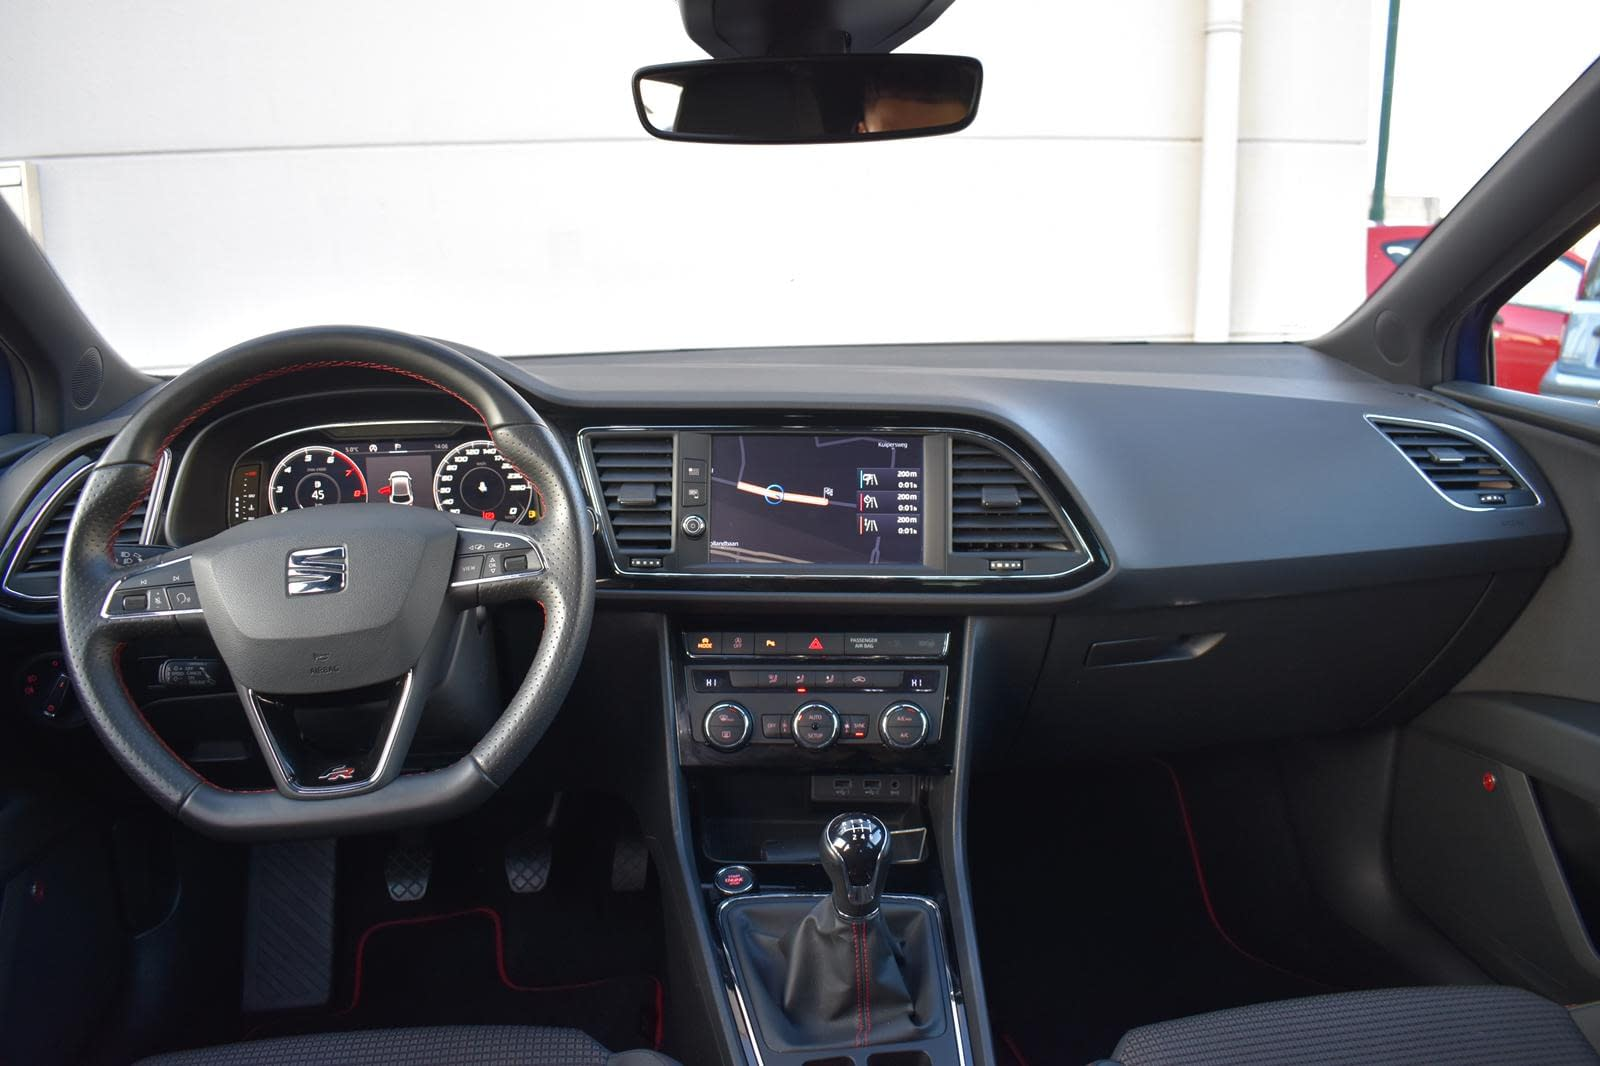 Seat LEON FR 1.5 TSI LED/NAVI/PDC/VIRTUAL COCKPIT